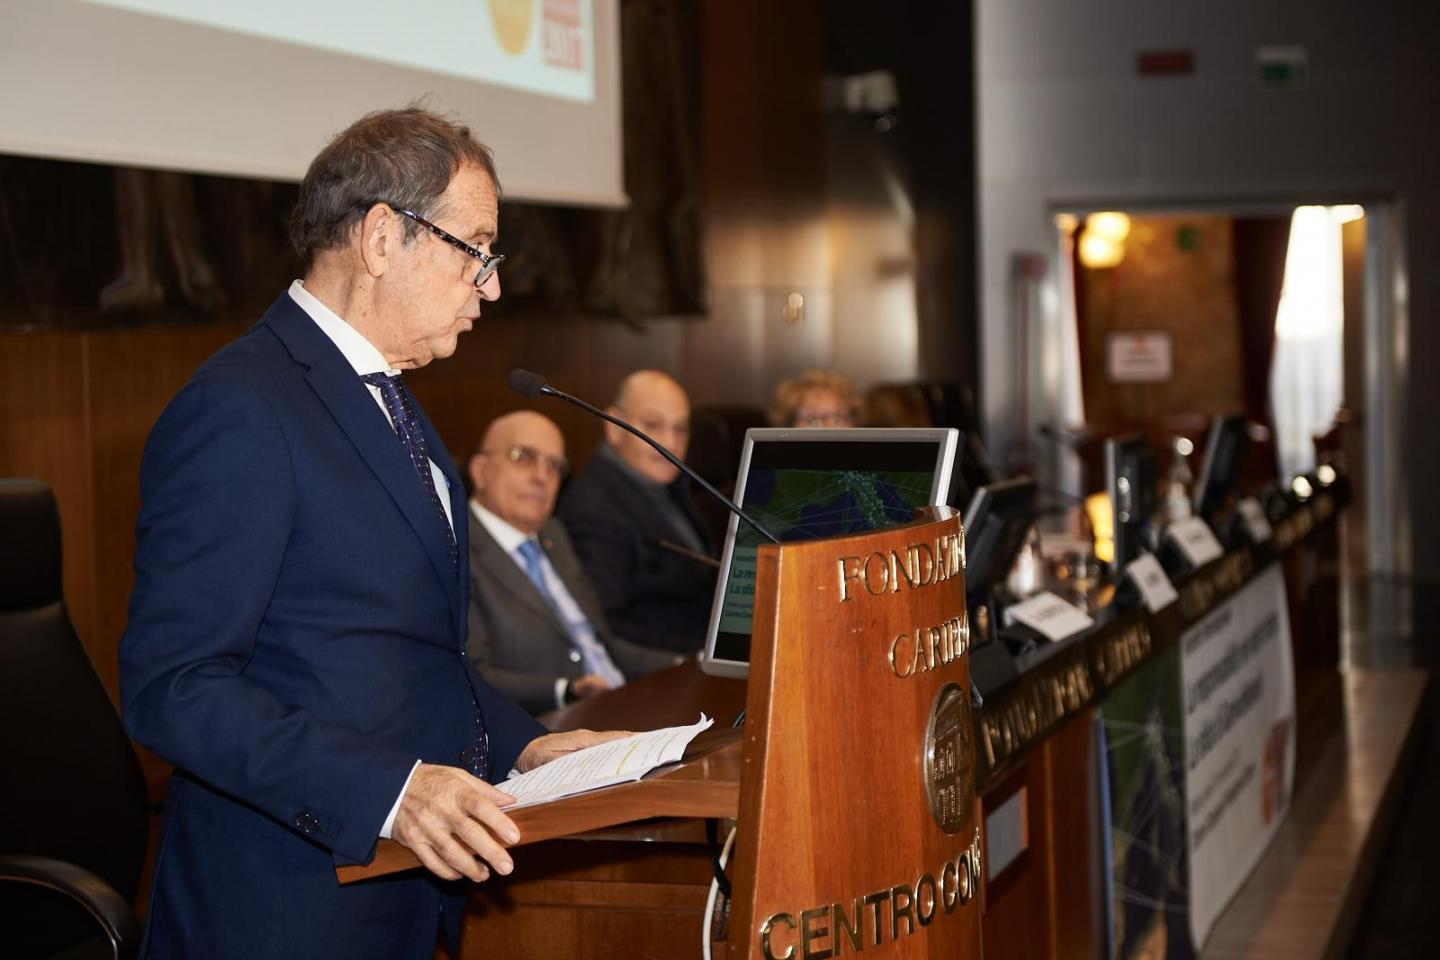 The greetings of the Under-Secretary of the Lombardy Region Presidency Gustavo Cioppa